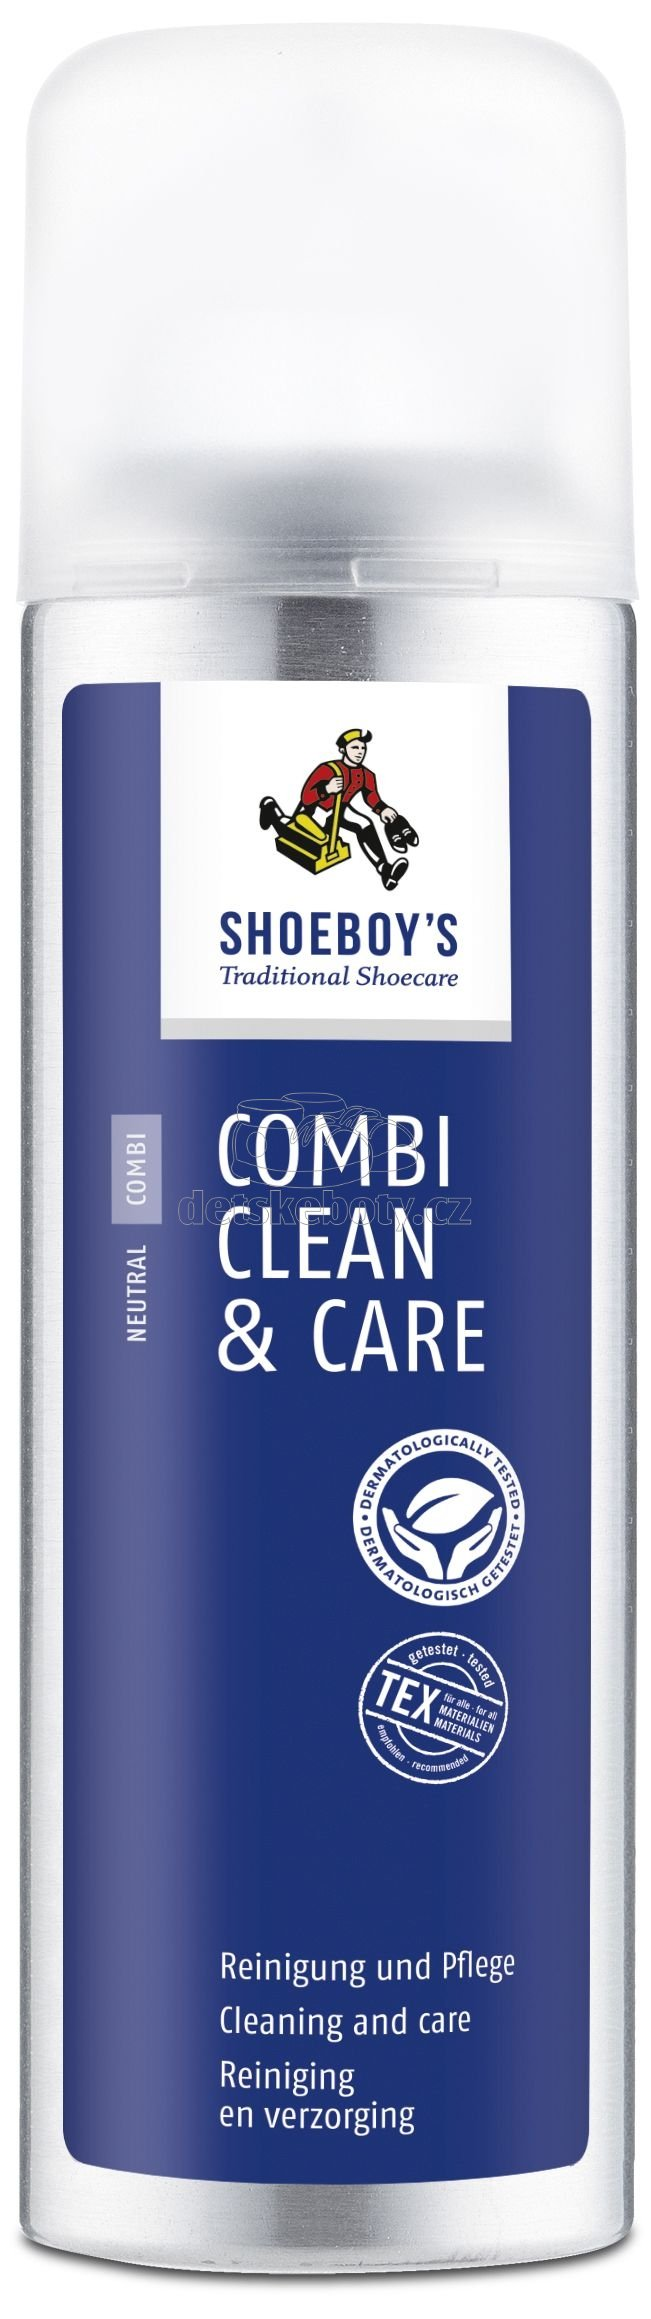 Shoeboy's COMBI CLEAN & CARE 200ml